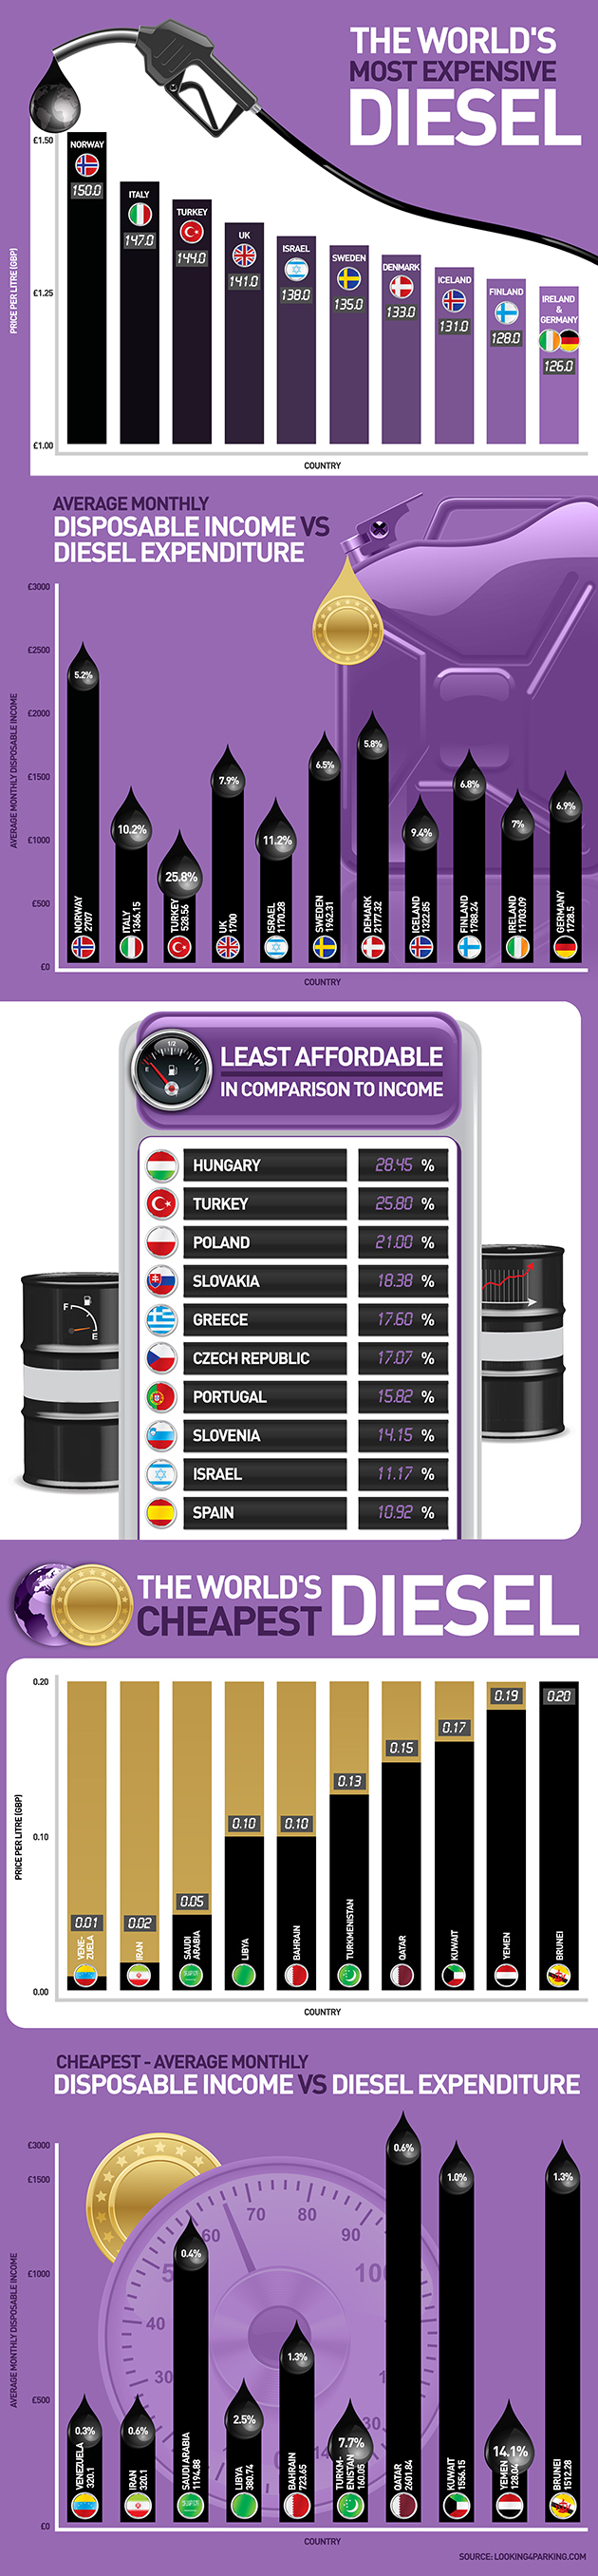 The Worlds Cheapest And Most Expensive Diesel